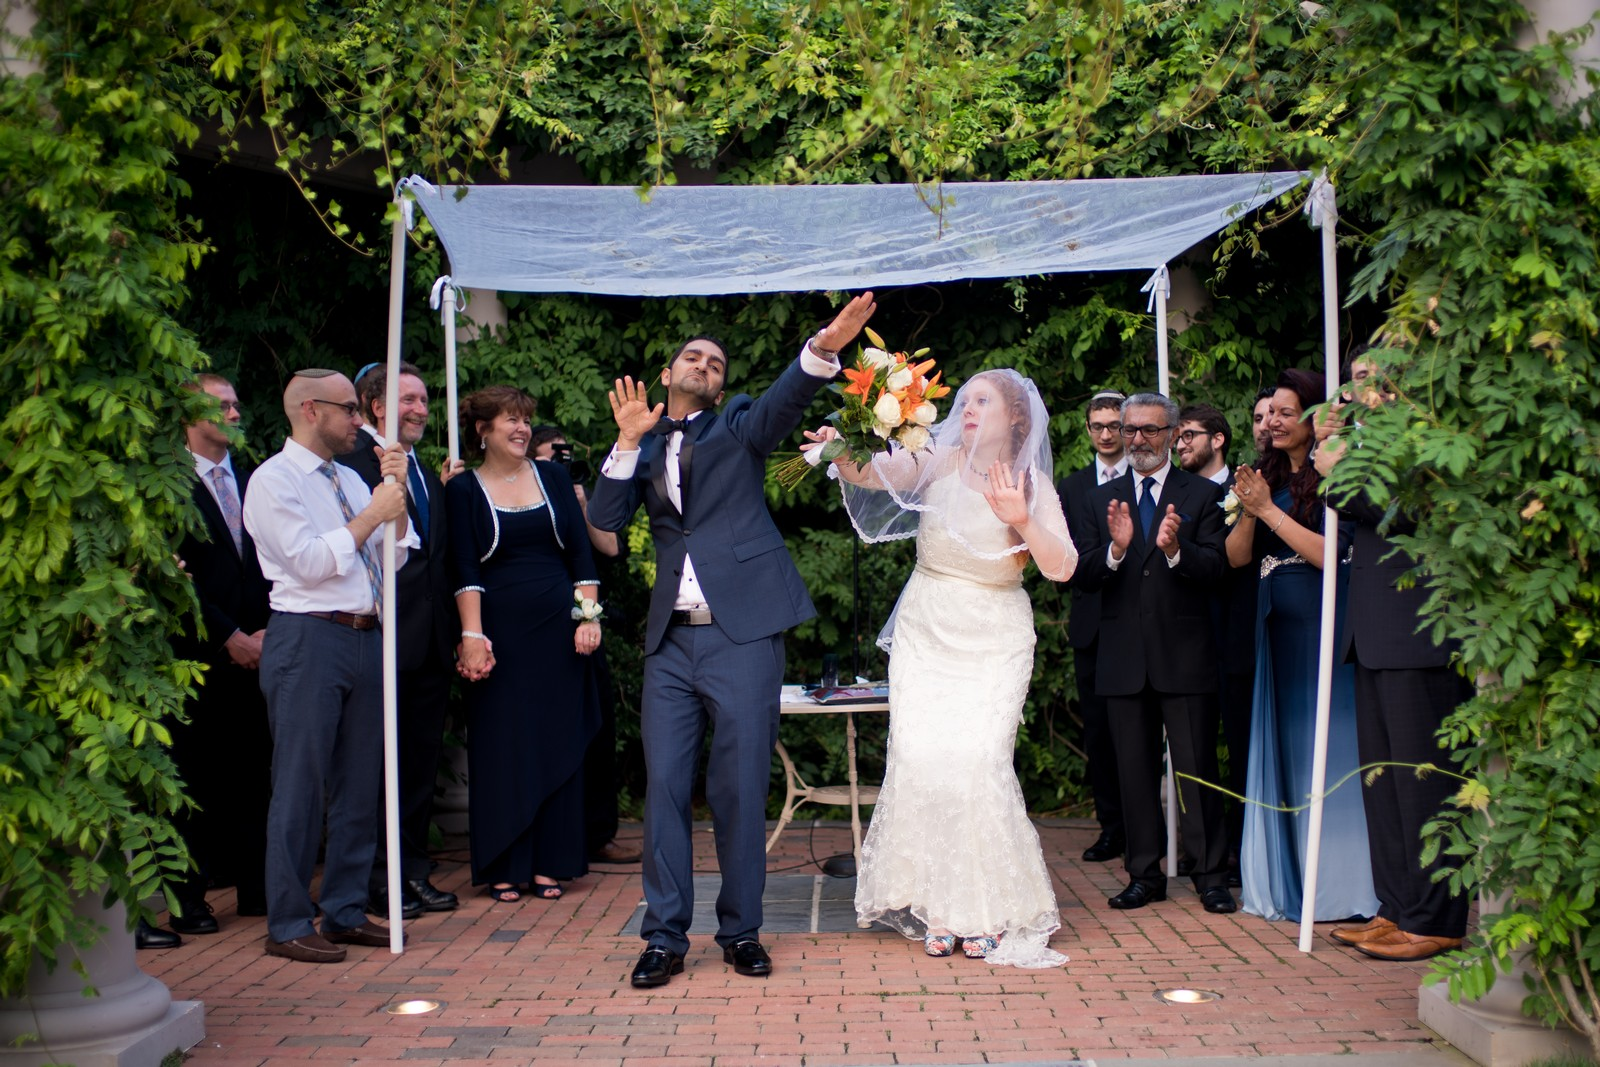 Sam and Yishai's Modern Orthodox Jewish Wedding at Crest Hollow Country Club, Woodbury NY, Photos by Chaim Schvarcz, Bride, Groom, Chuppah, Dancing